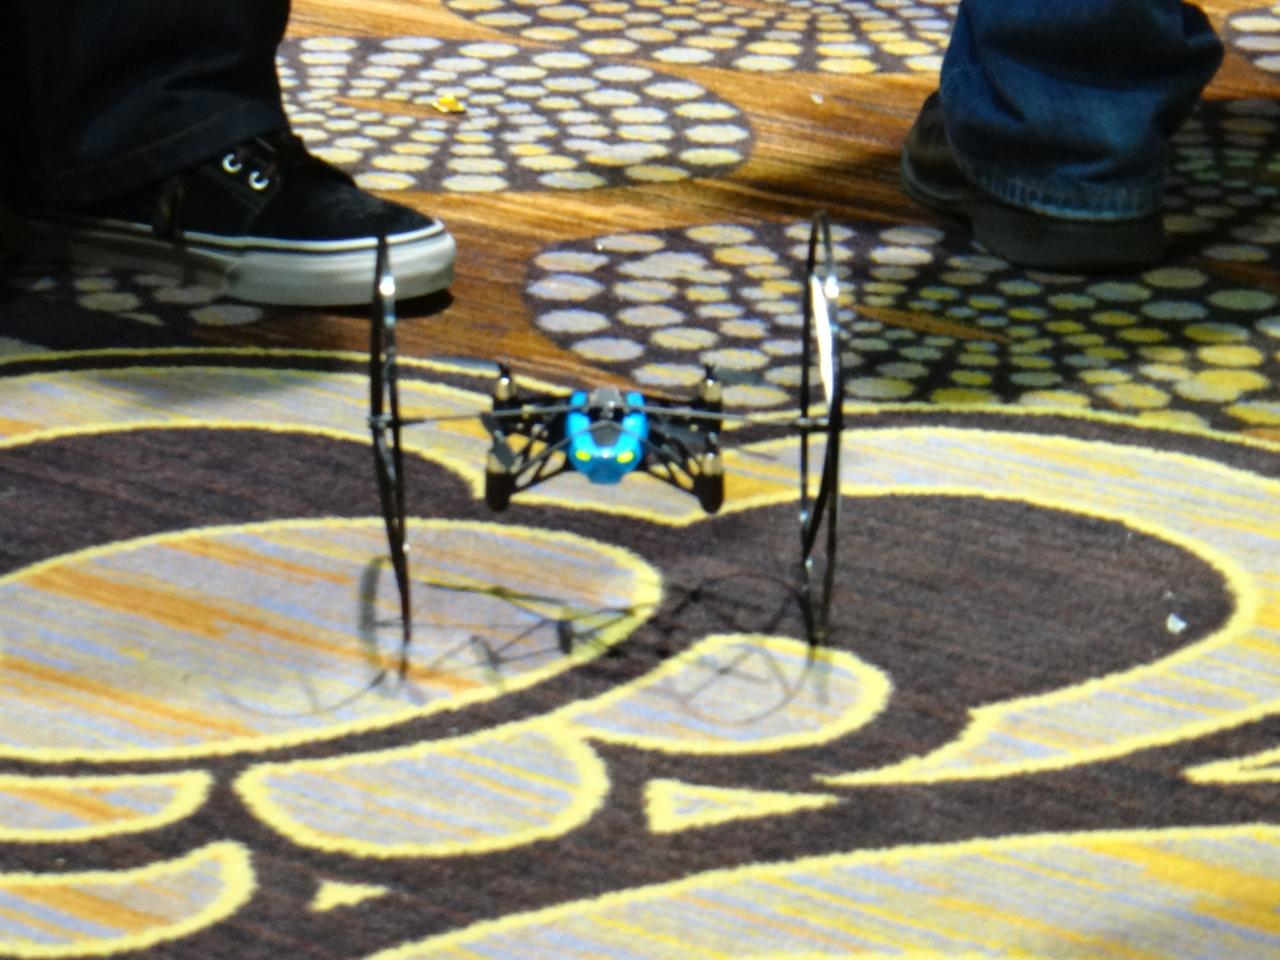 Watching the demonstrations from Parrot reps, the two bots appear easy to control, but could take some practice to pull off their more impressive maneuvers